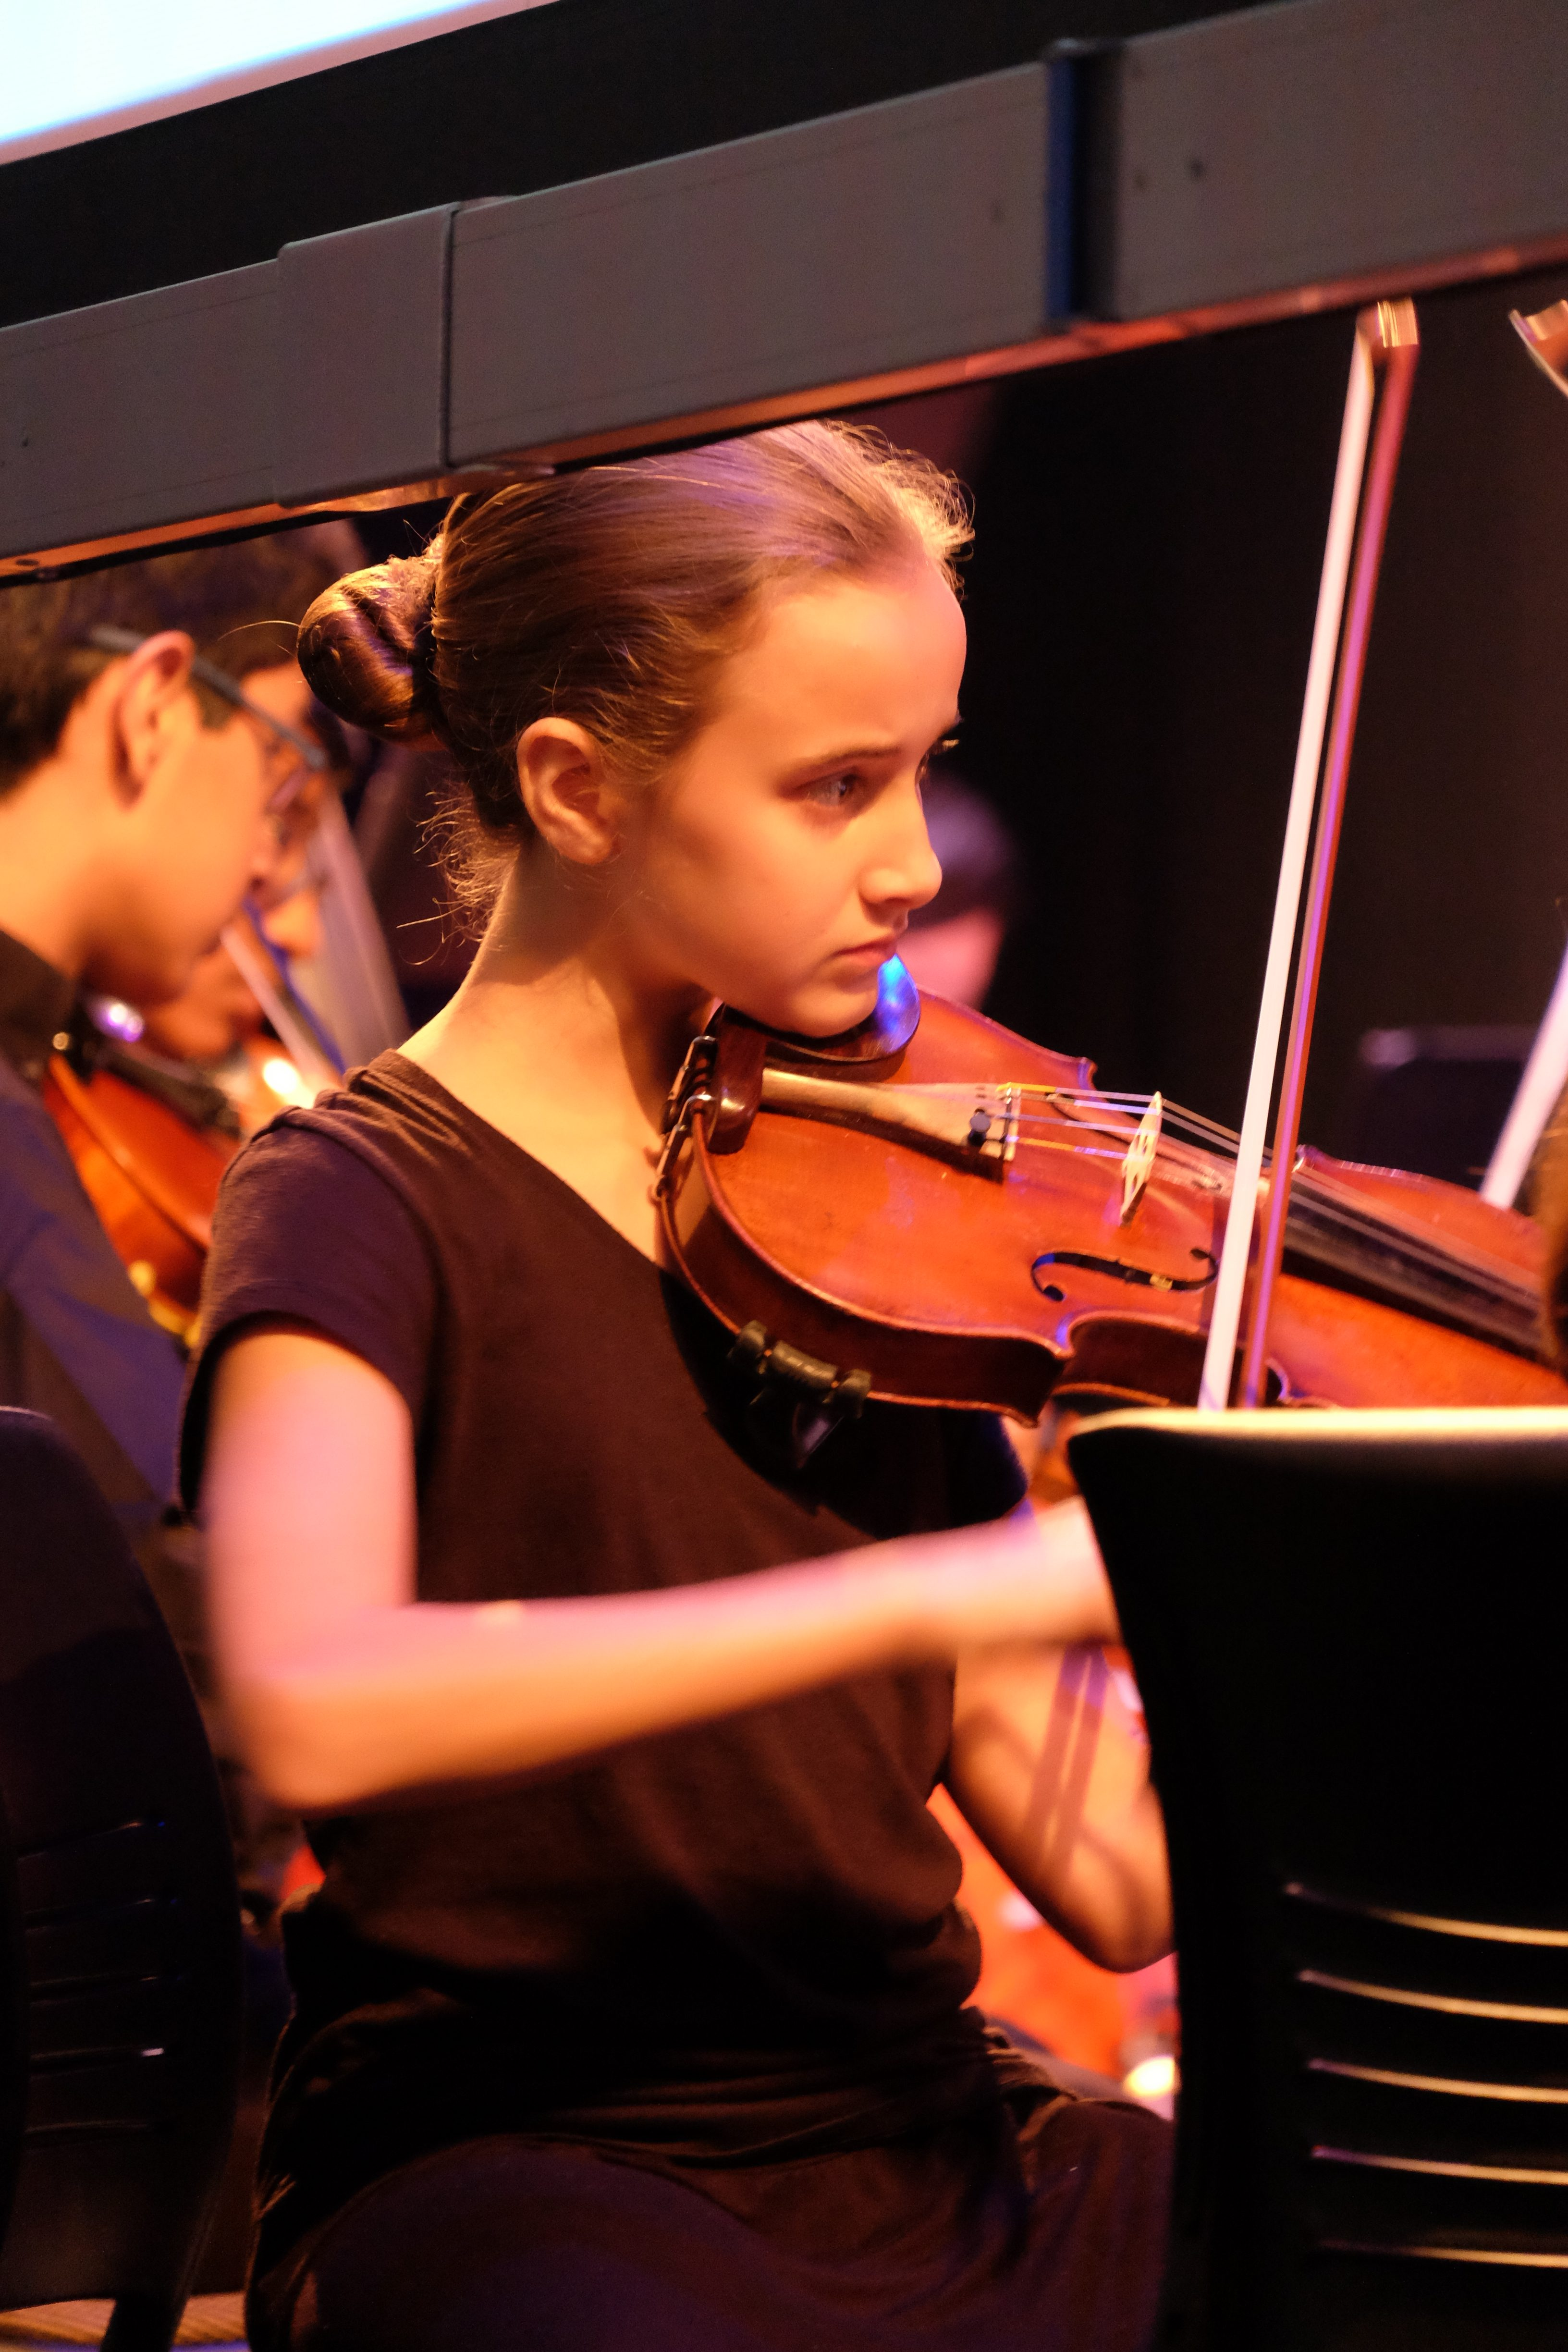 Close up of young violinist at string sinfonia concert